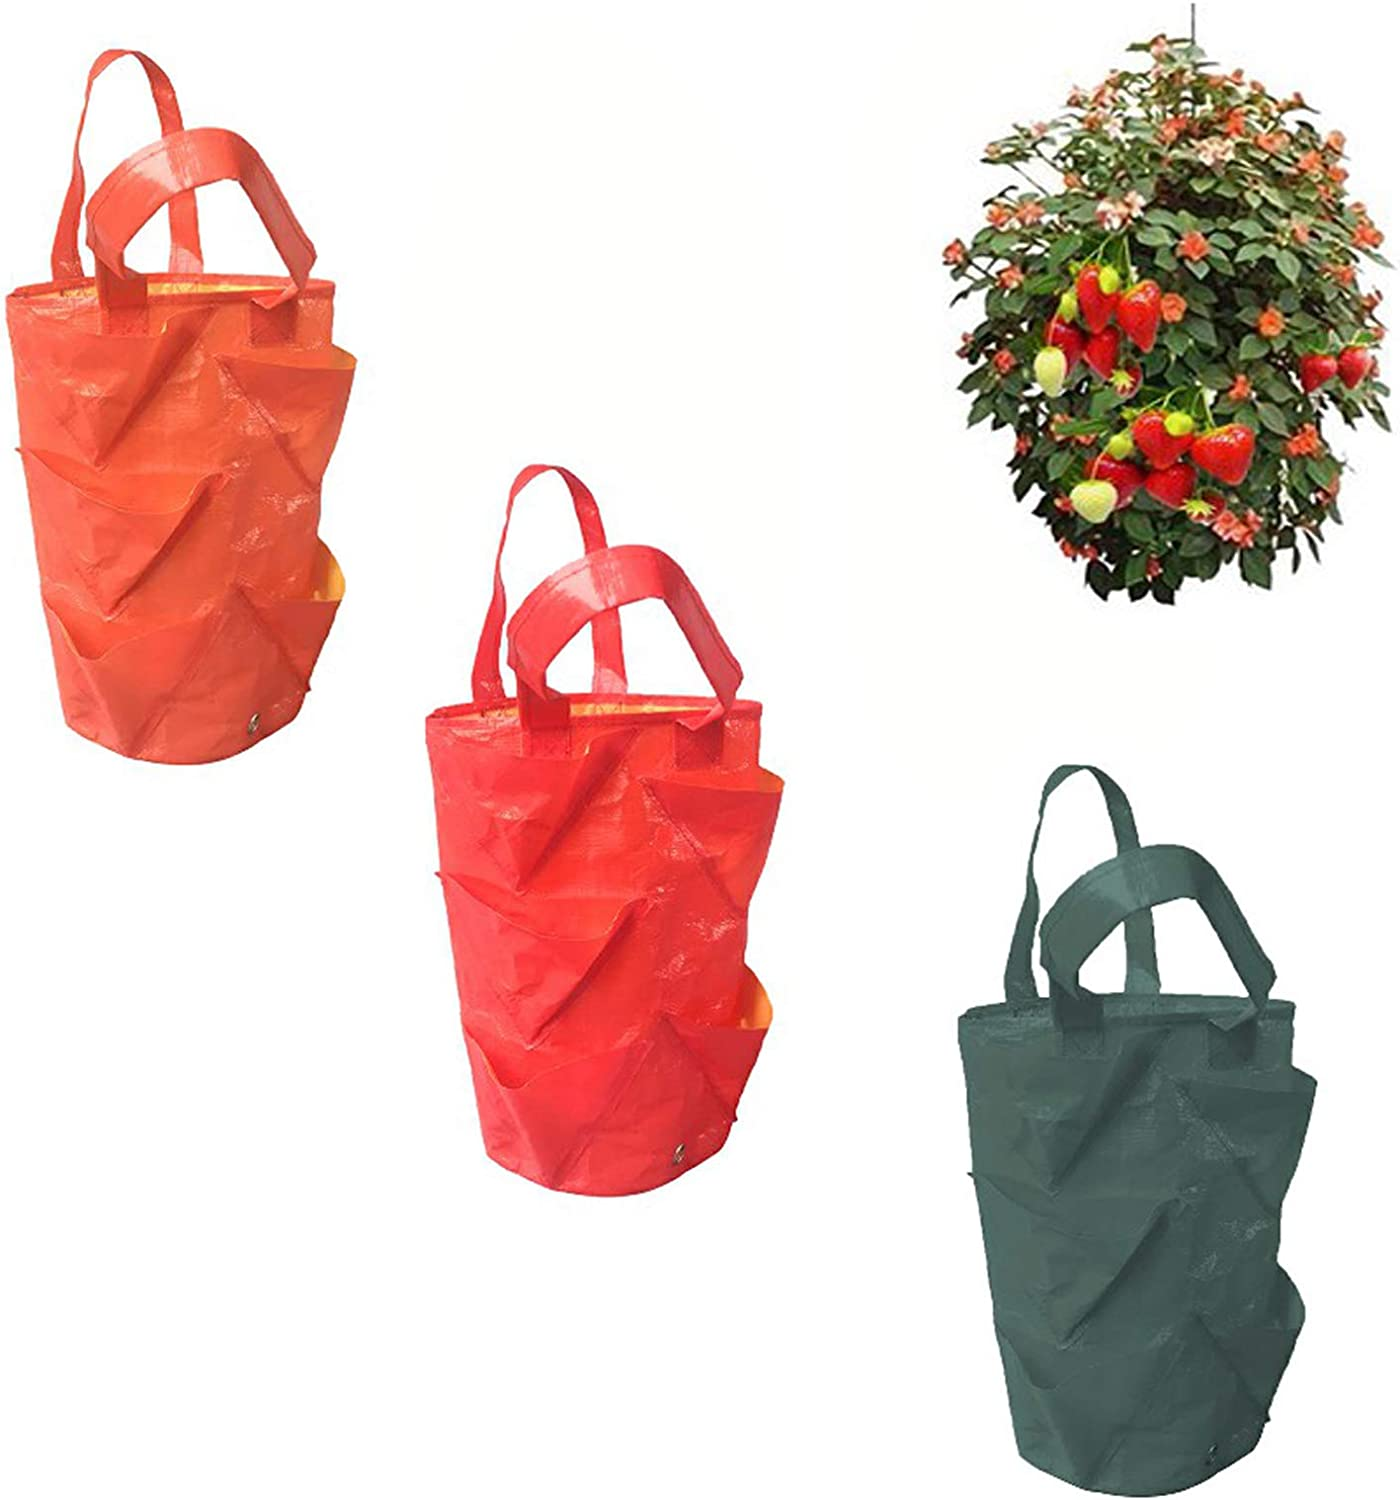 Hofumix Grow Bags Hanging Strawberry Planting Max 71% OFF Ranking TOP17 Pots Planters with